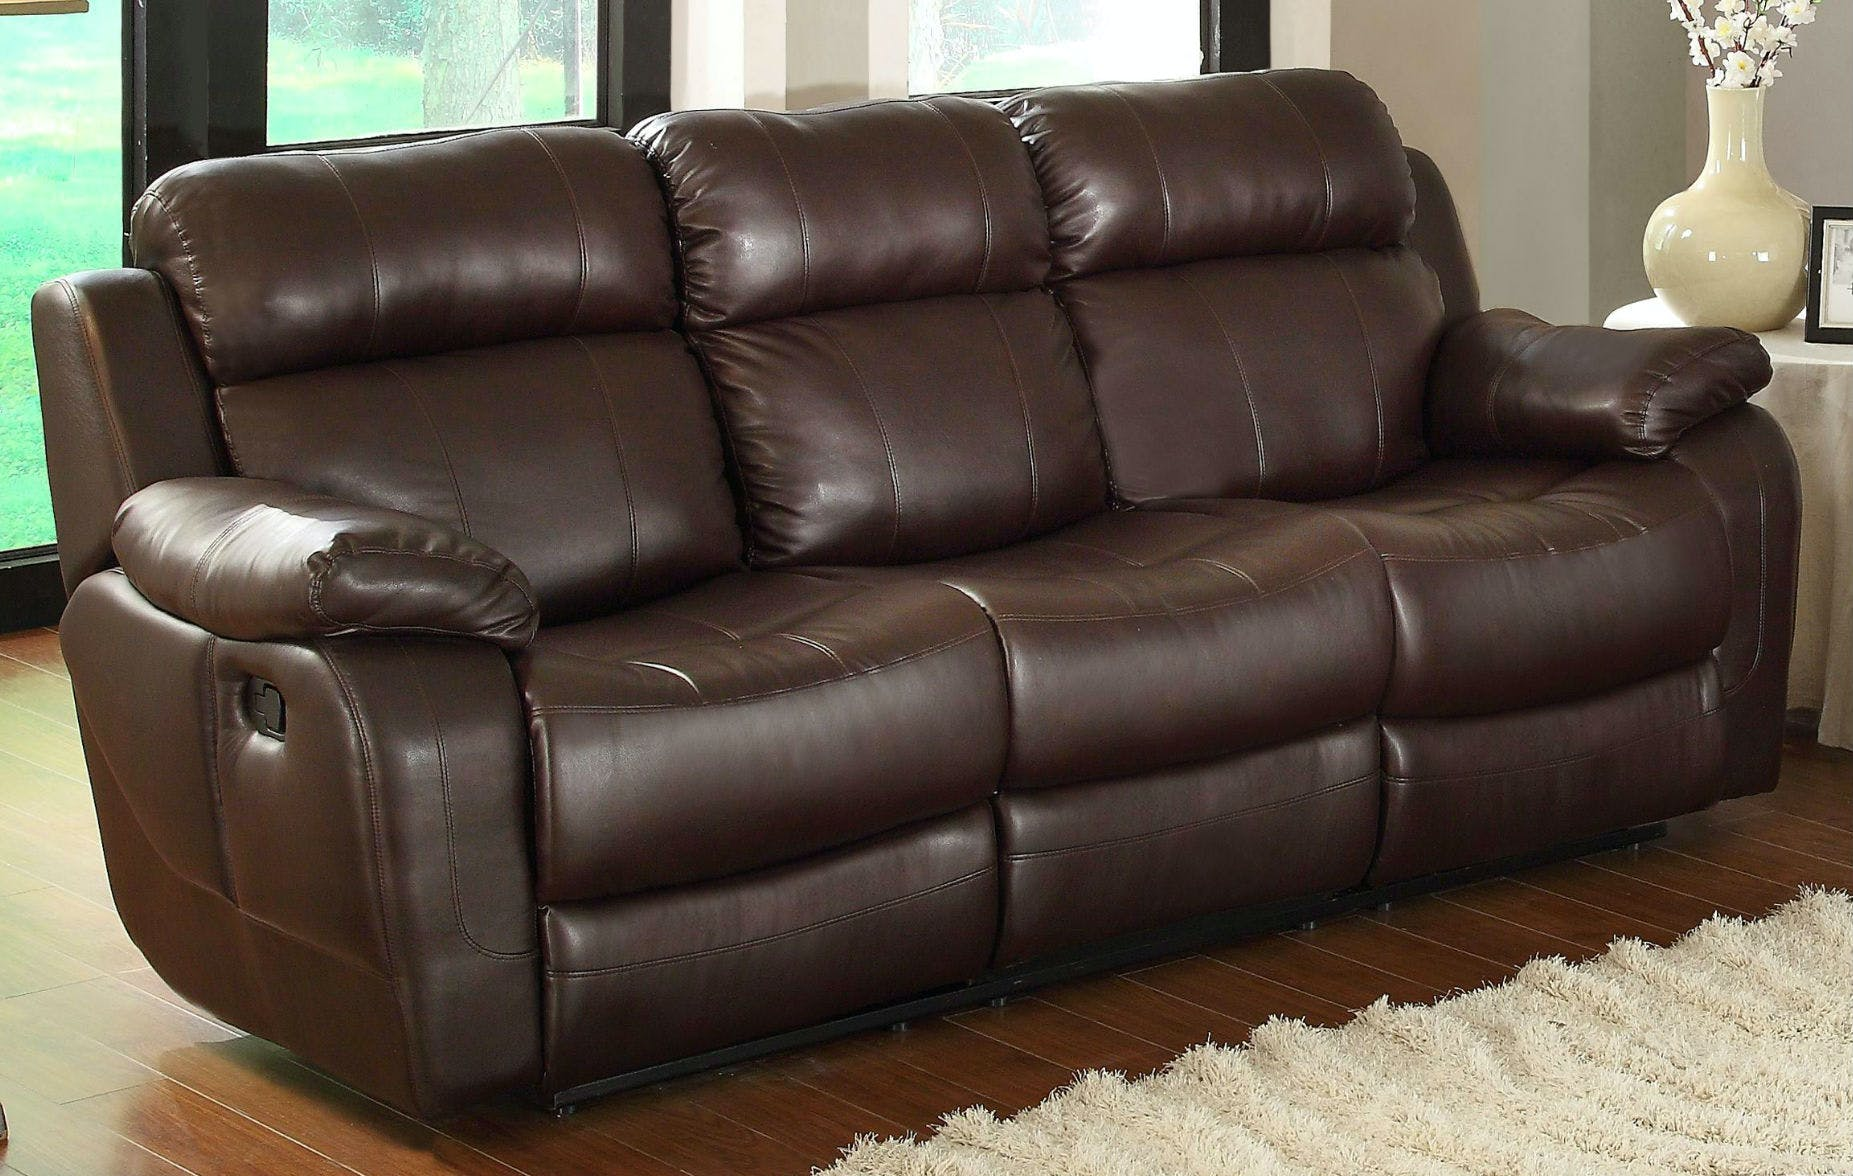 Picture of: Homelegance Living Room Double Reclining Sofa With Center Drop Down Cup Holders 9724brw 3